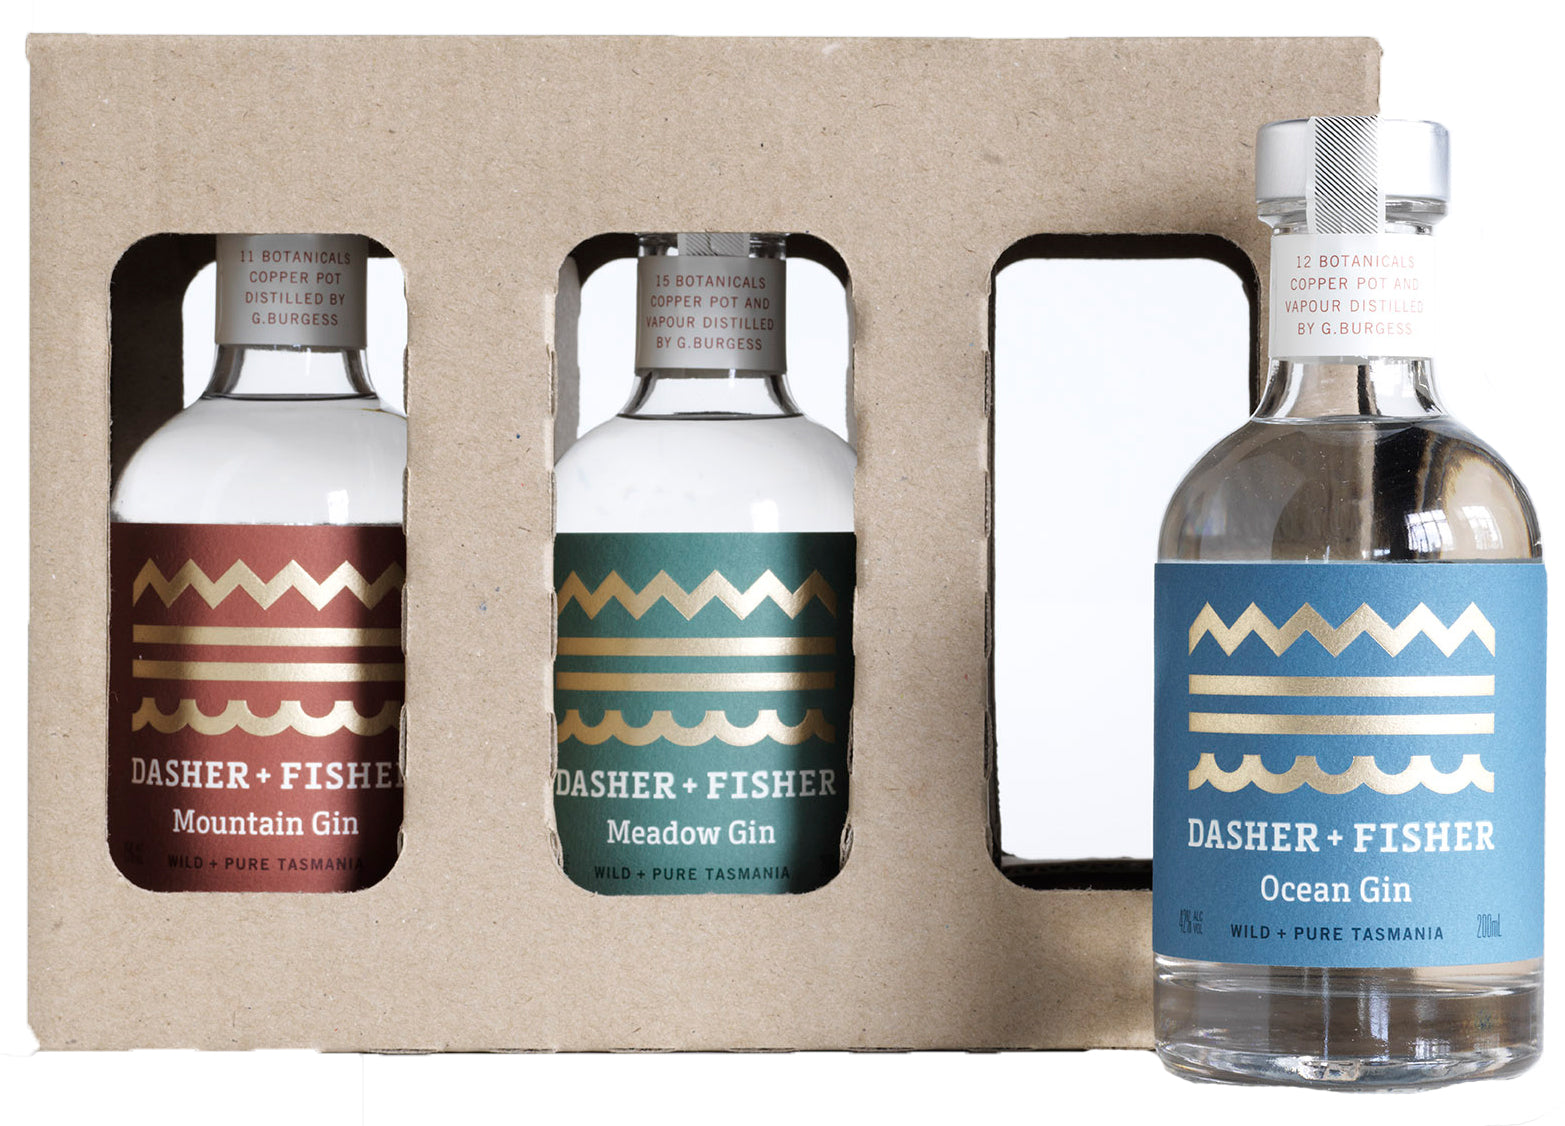 Dasher + Fisher Gift Pack